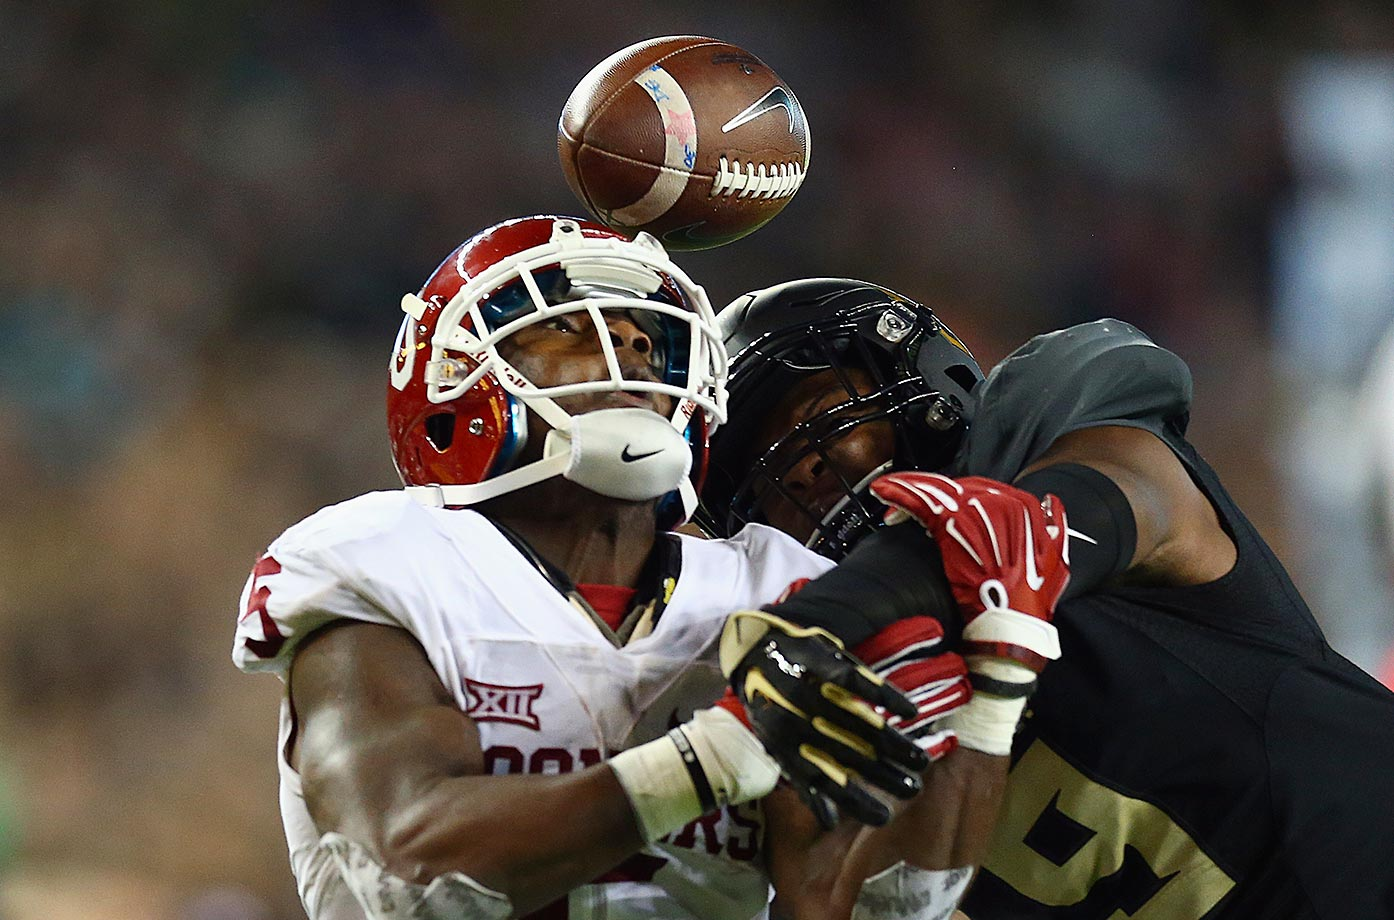 Ryan Reid of Baylor breaks up a pass intended for Durron Neal of Oklahoma.